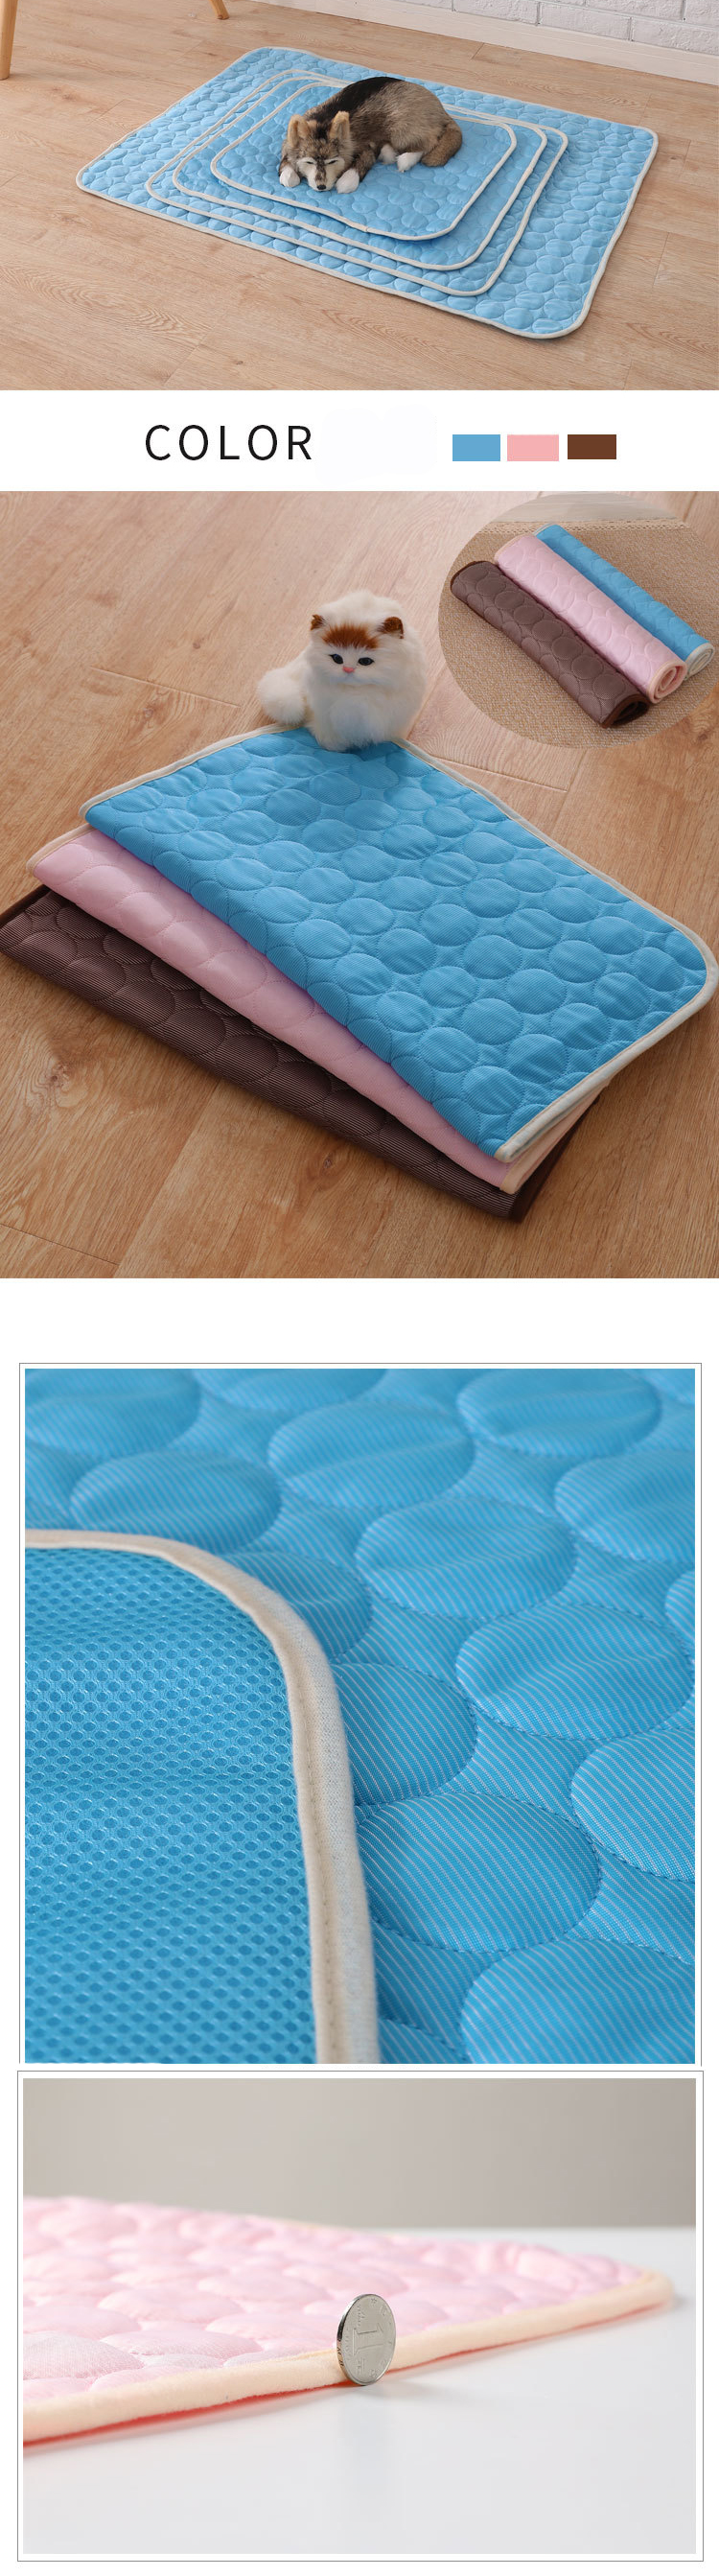 Hoge Kwaliteit Hond Cooling Pad Hond Cooling Mat